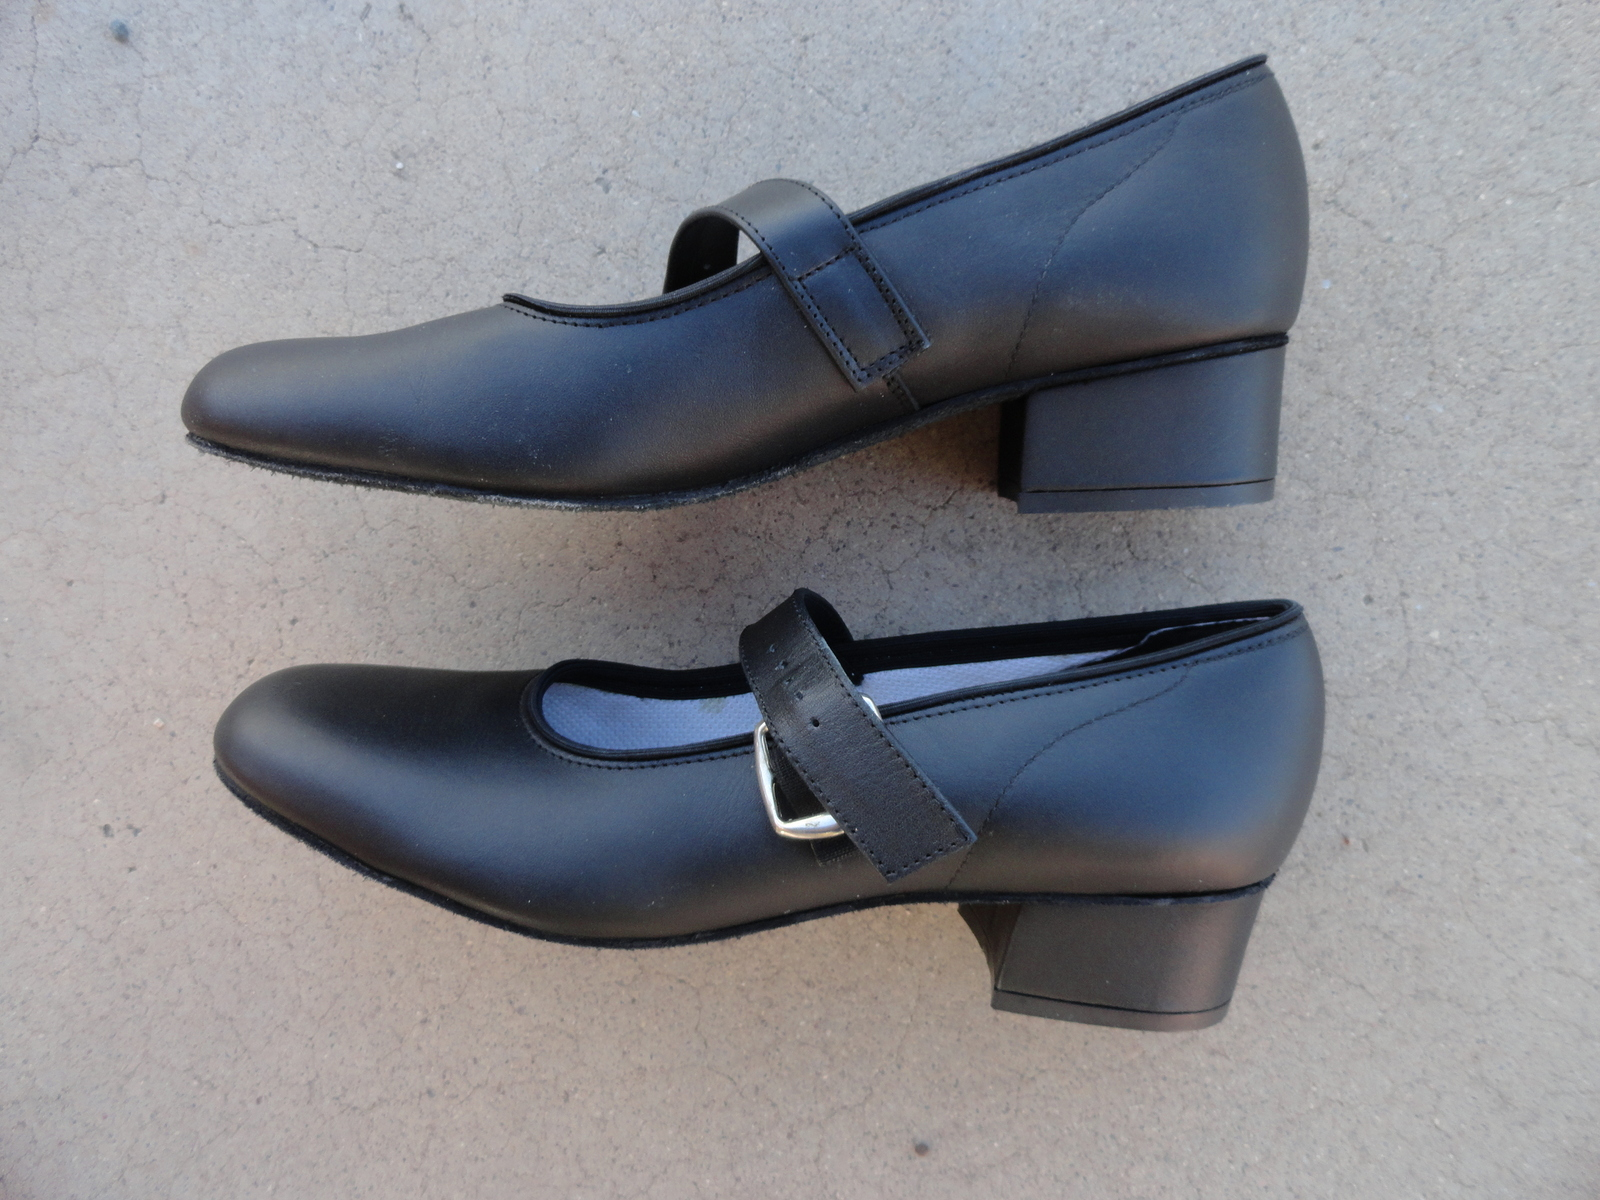 Round or Square Dancing Shoes Womens 8.5 B Black Mary Janes Synthetic Upper